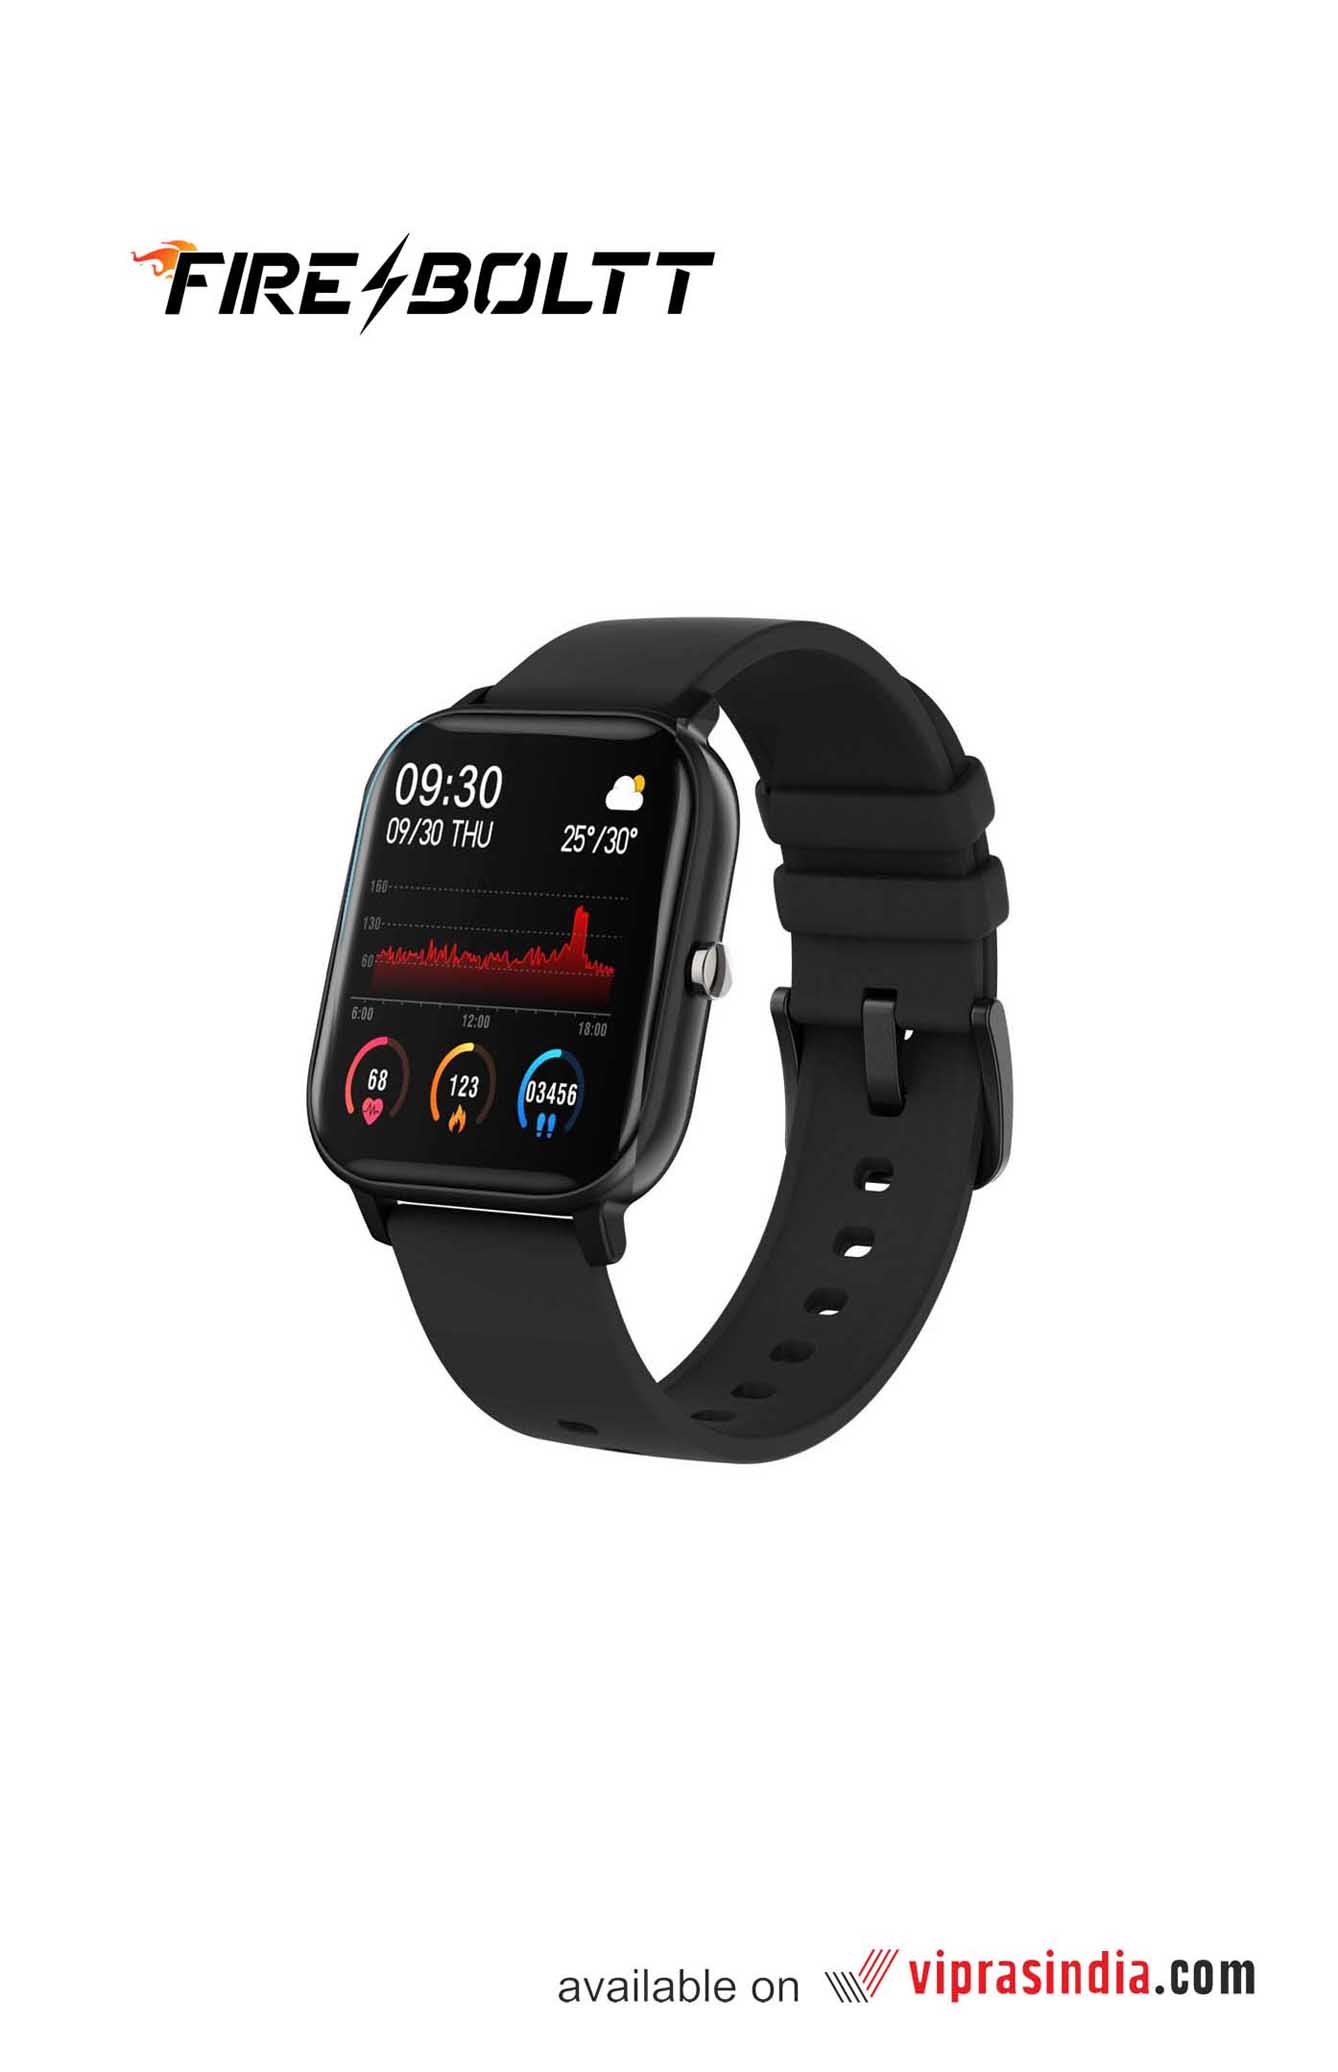 Fire-Boltt SPO2 Fitness Smartwatch (Black)